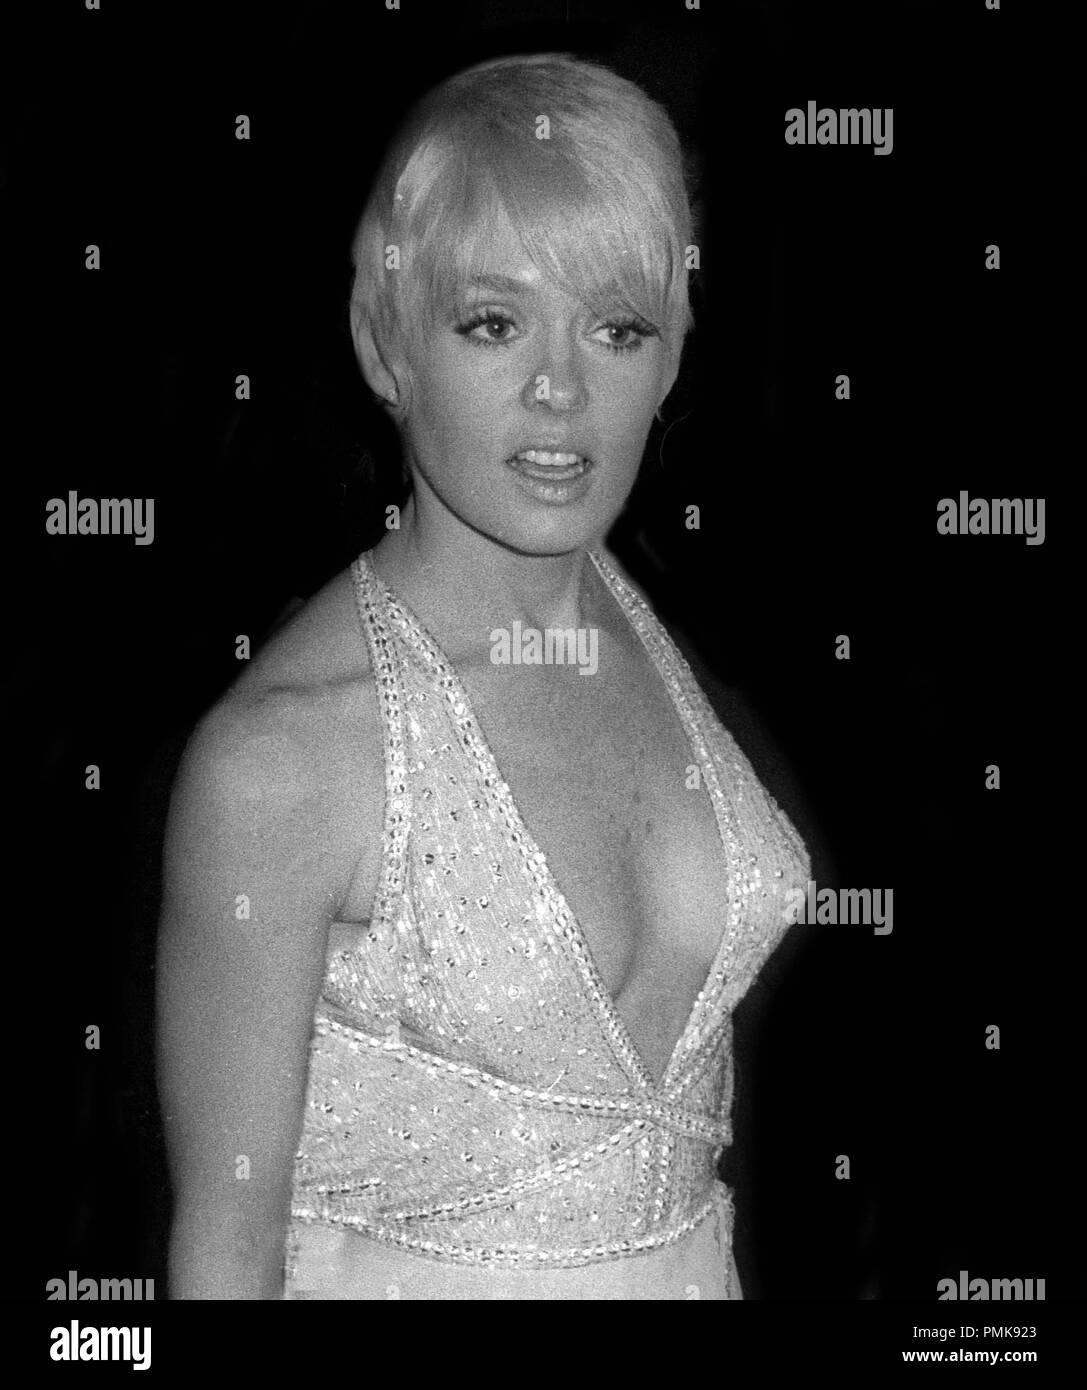 Joey Heatherton Joey Heatherton new photo